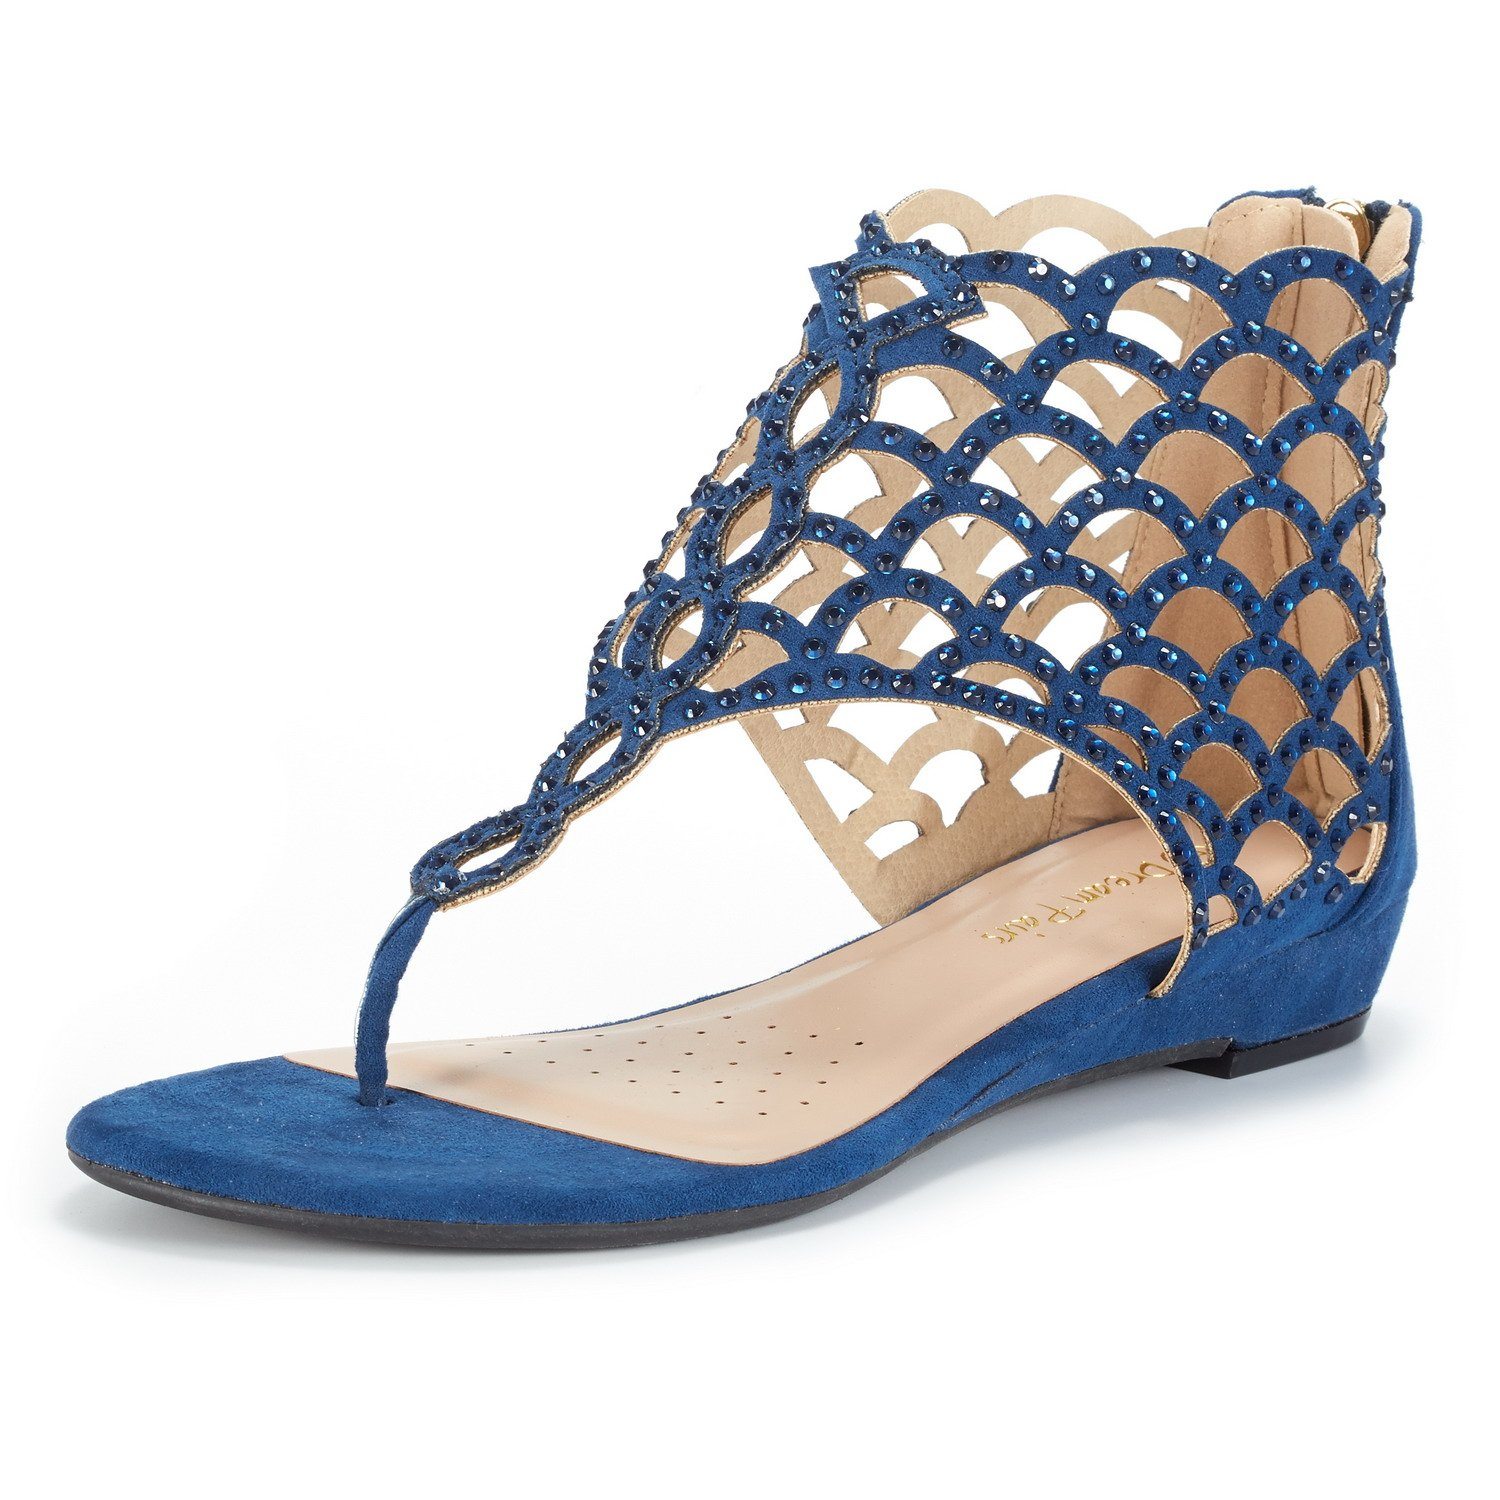 Women's Rhinestone Jewel Fish Scale Pattern Blue Ankle-High Flat Sandals - DeluxeAdultCostumes.com